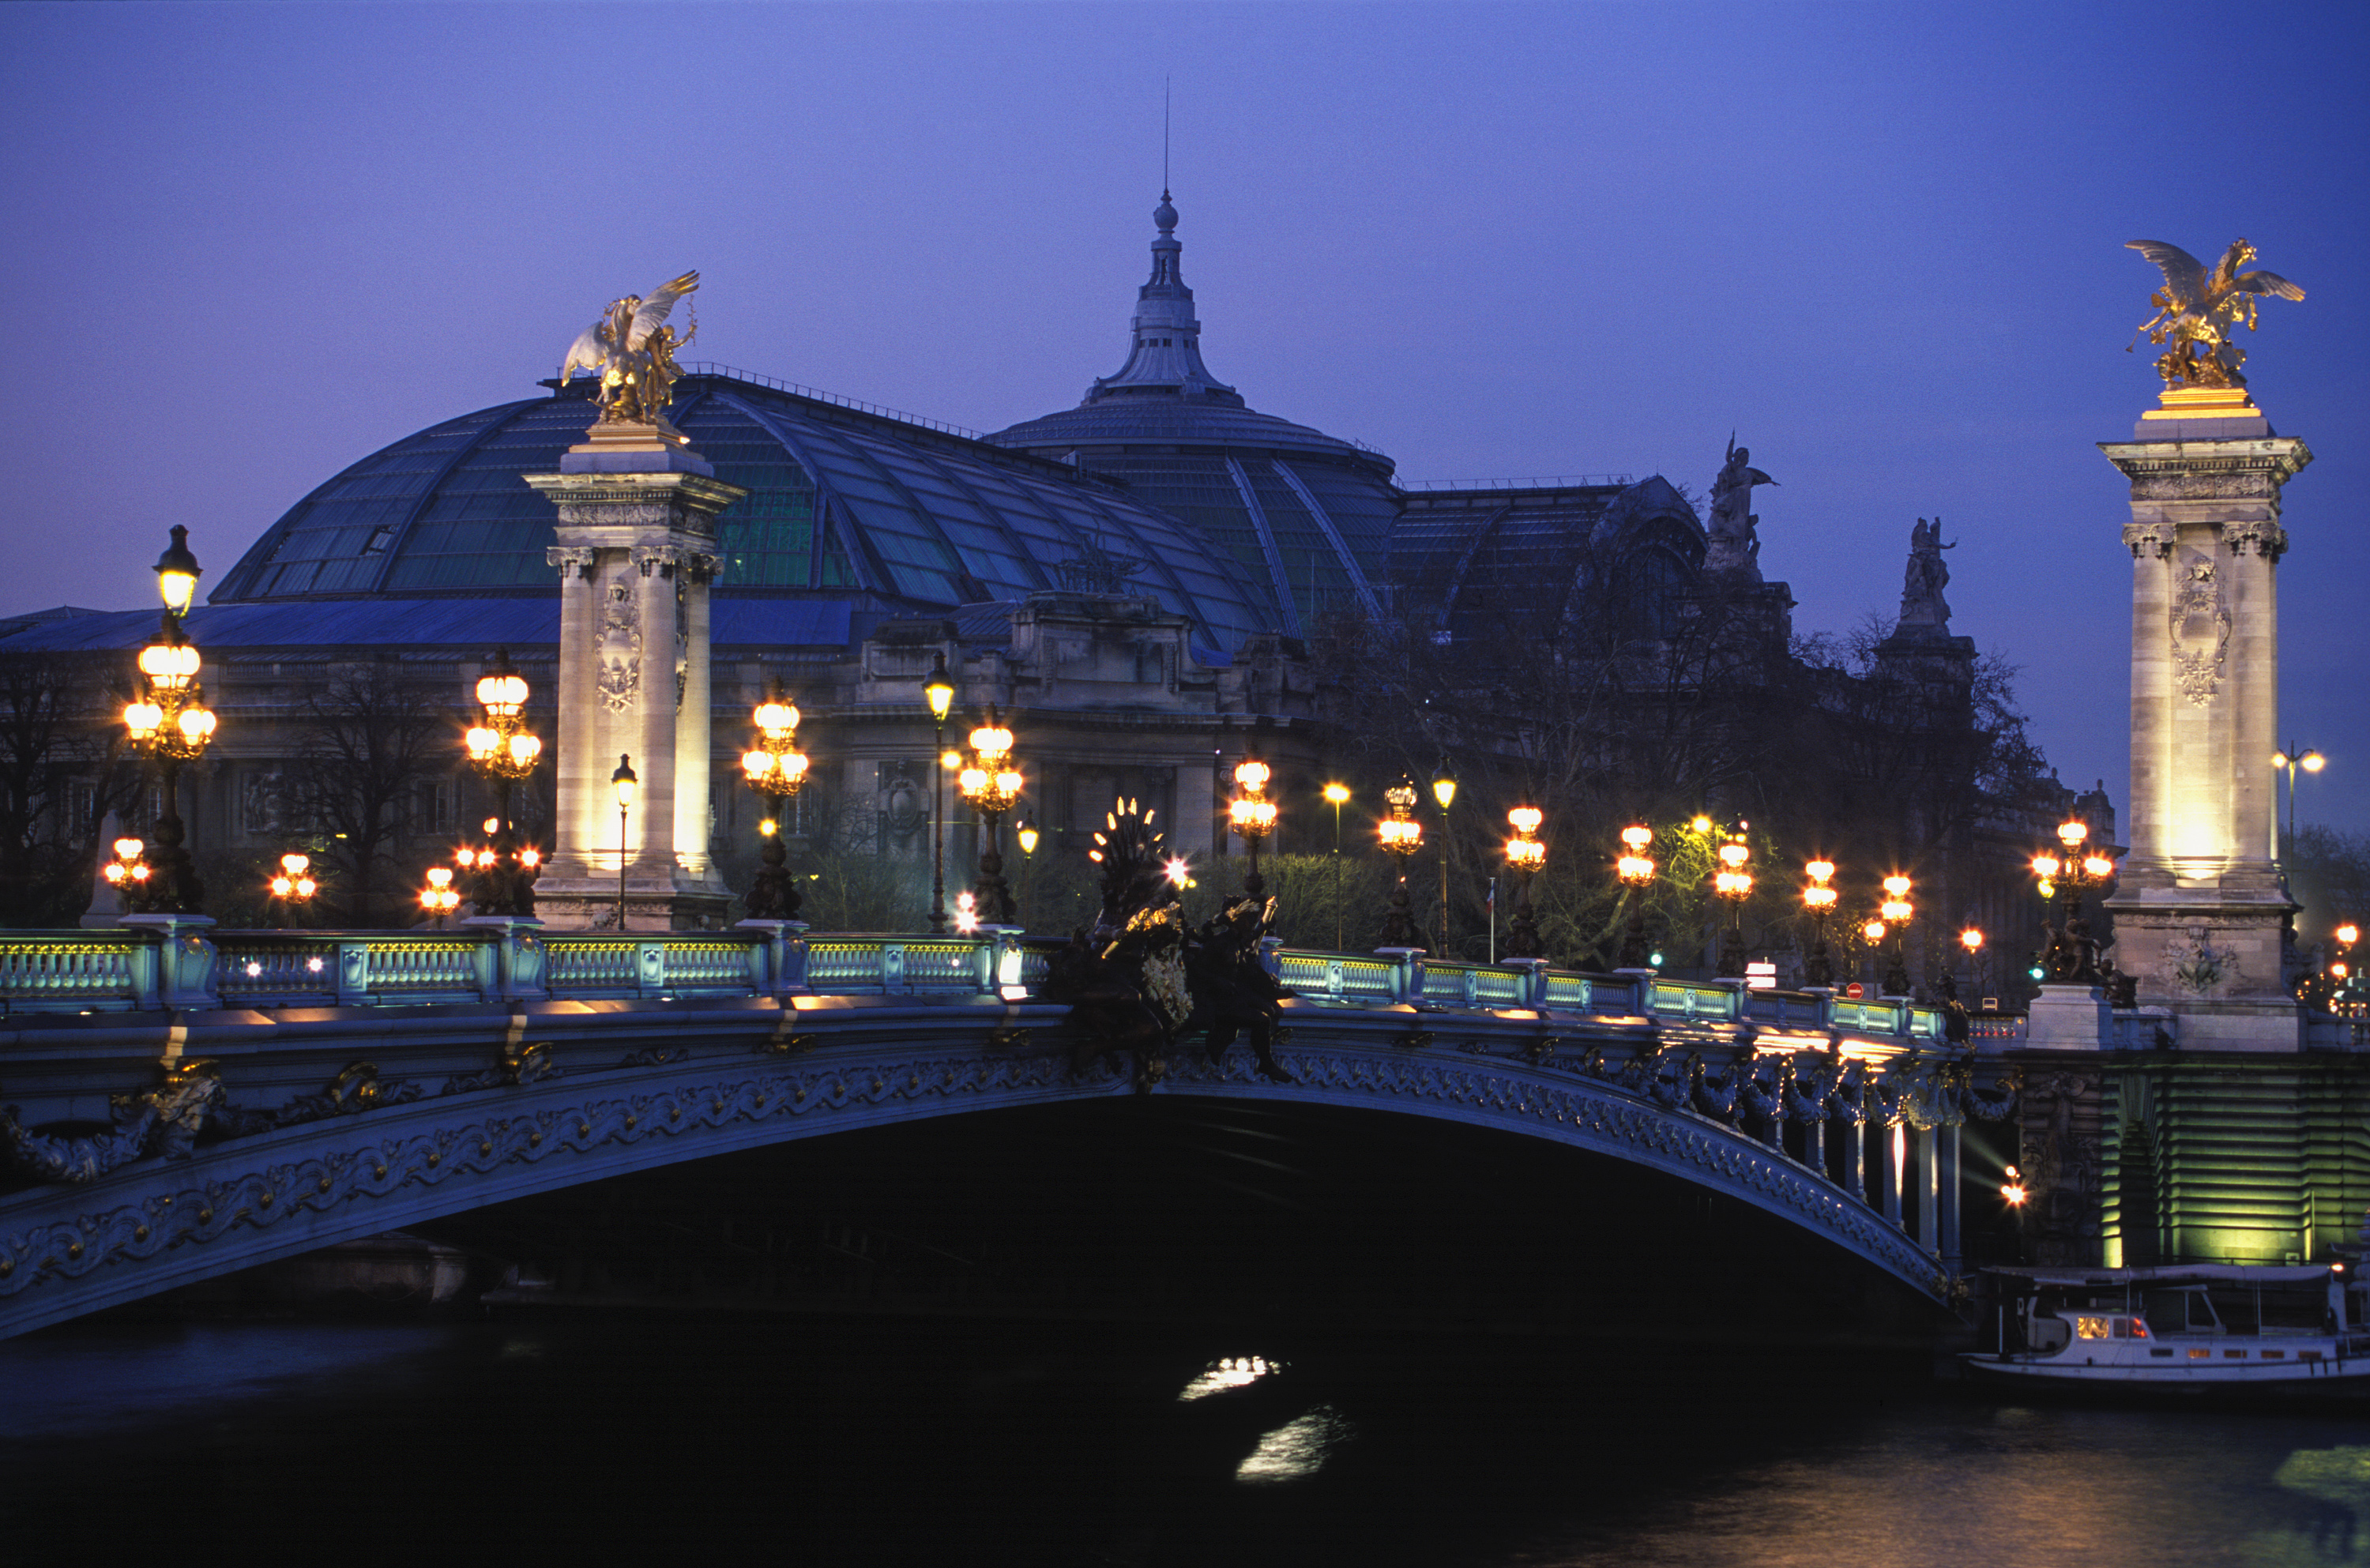 Alexander III bridge at night Paris